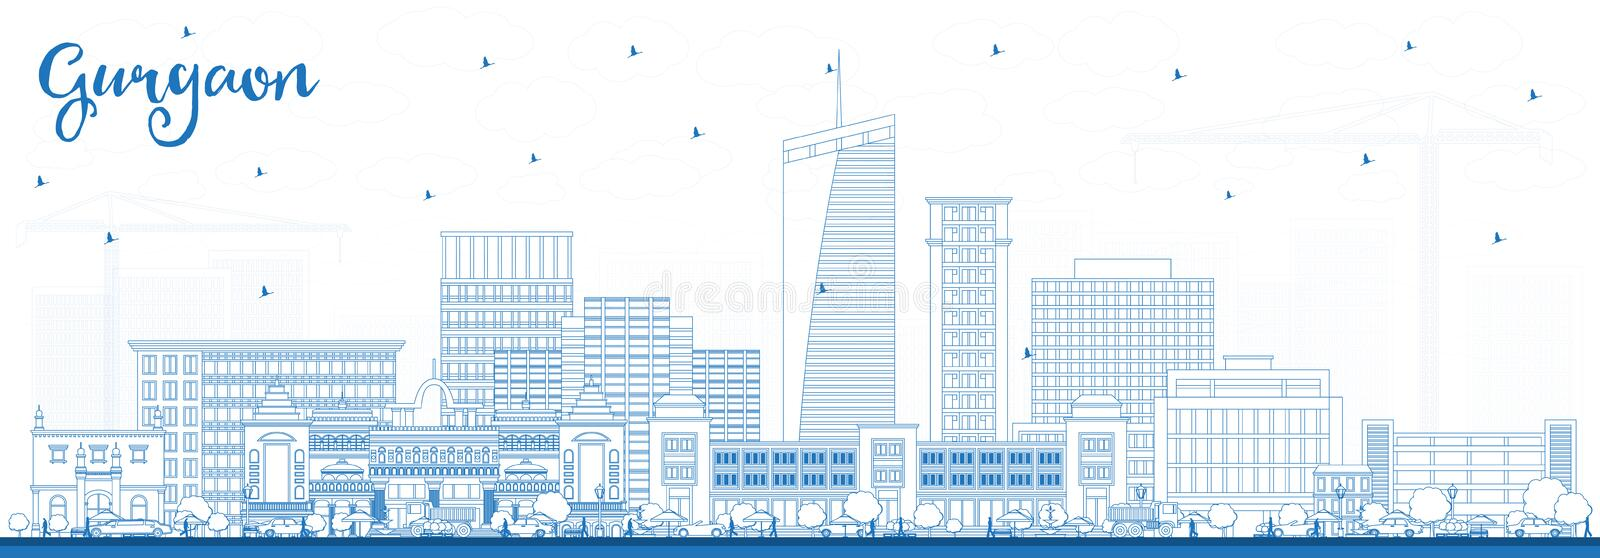 Outline Gurgaon India City Skyline with Blue Buildings. Vector Illustration. Business Travel and Tourism Concept with Modern Architecture. Gurgaon Cityscape vector illustration